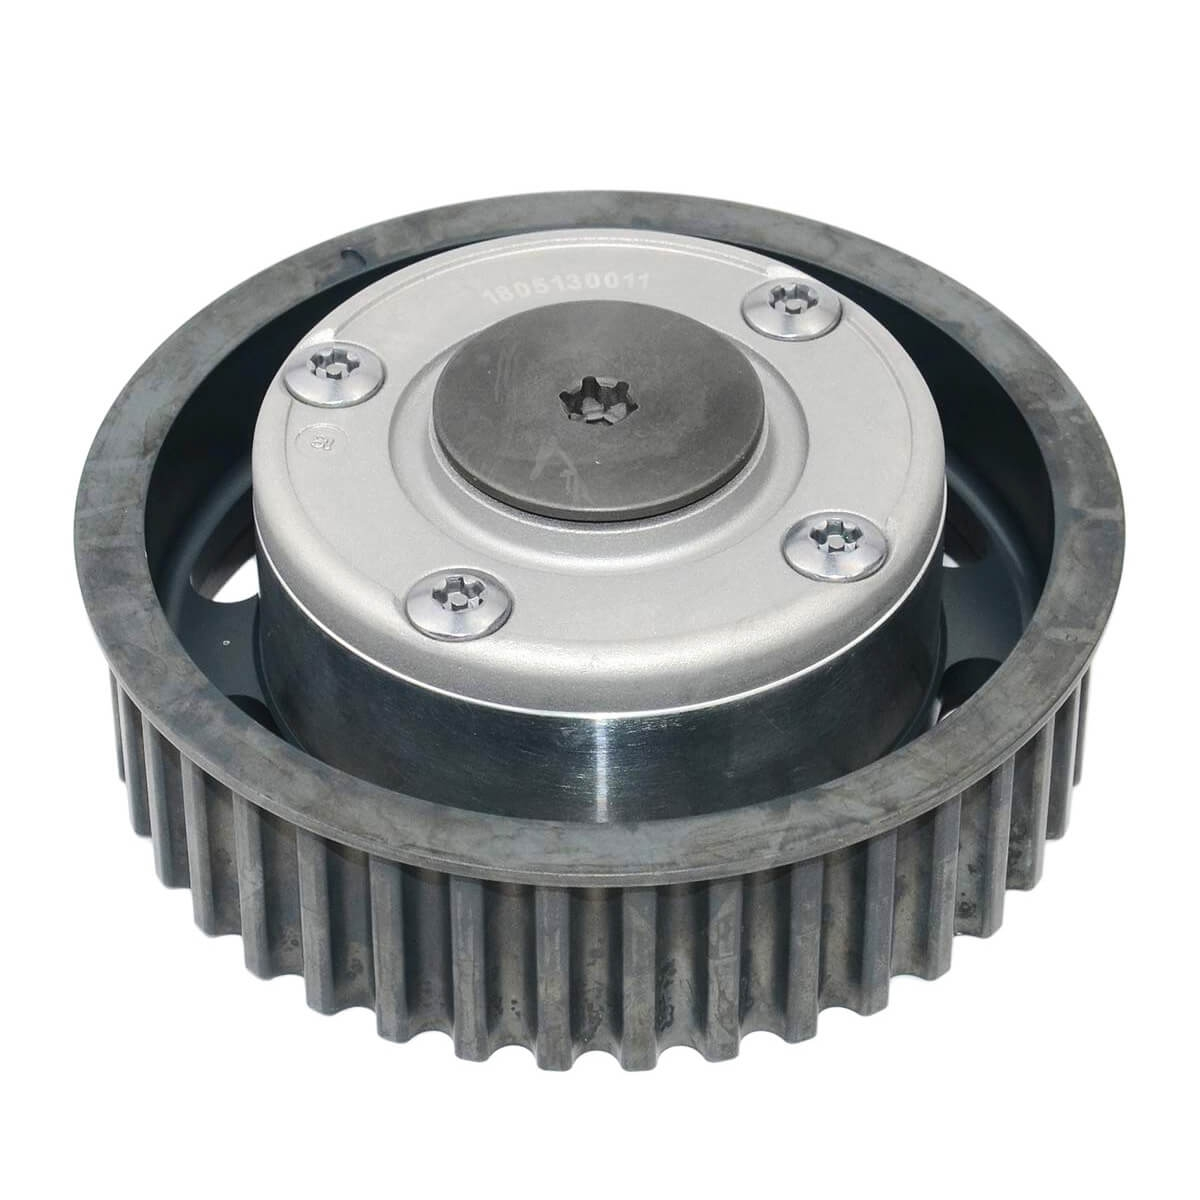 HYUNDAI PONY/EXCEL Cam Dephaser Pulley